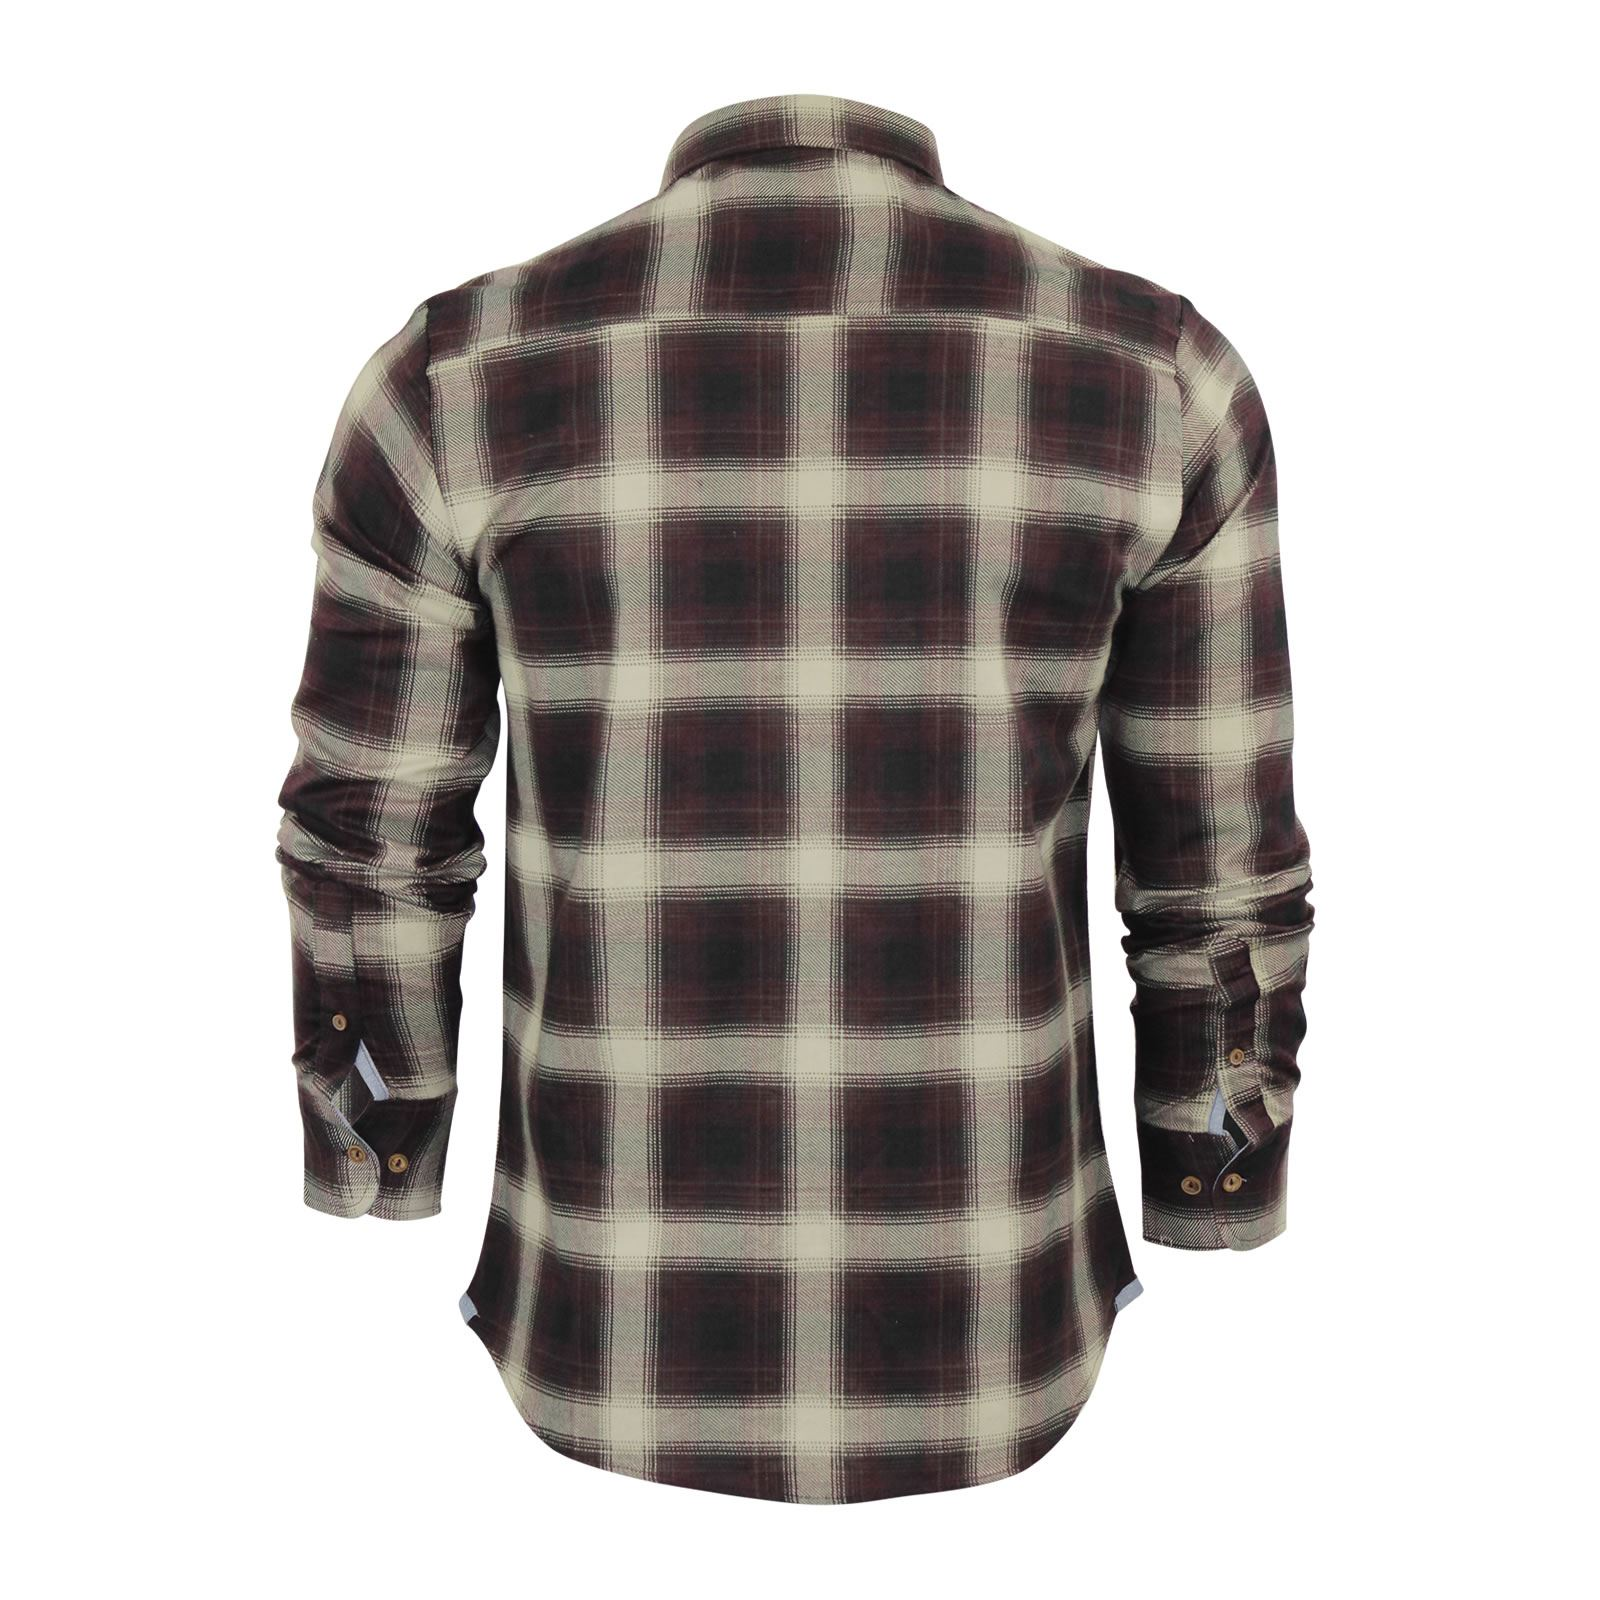 Mens-Check-Shirt-Brave-Soul-Flannel-Brushed-Cotton-Long-Sleeve-Casual-Top thumbnail 18